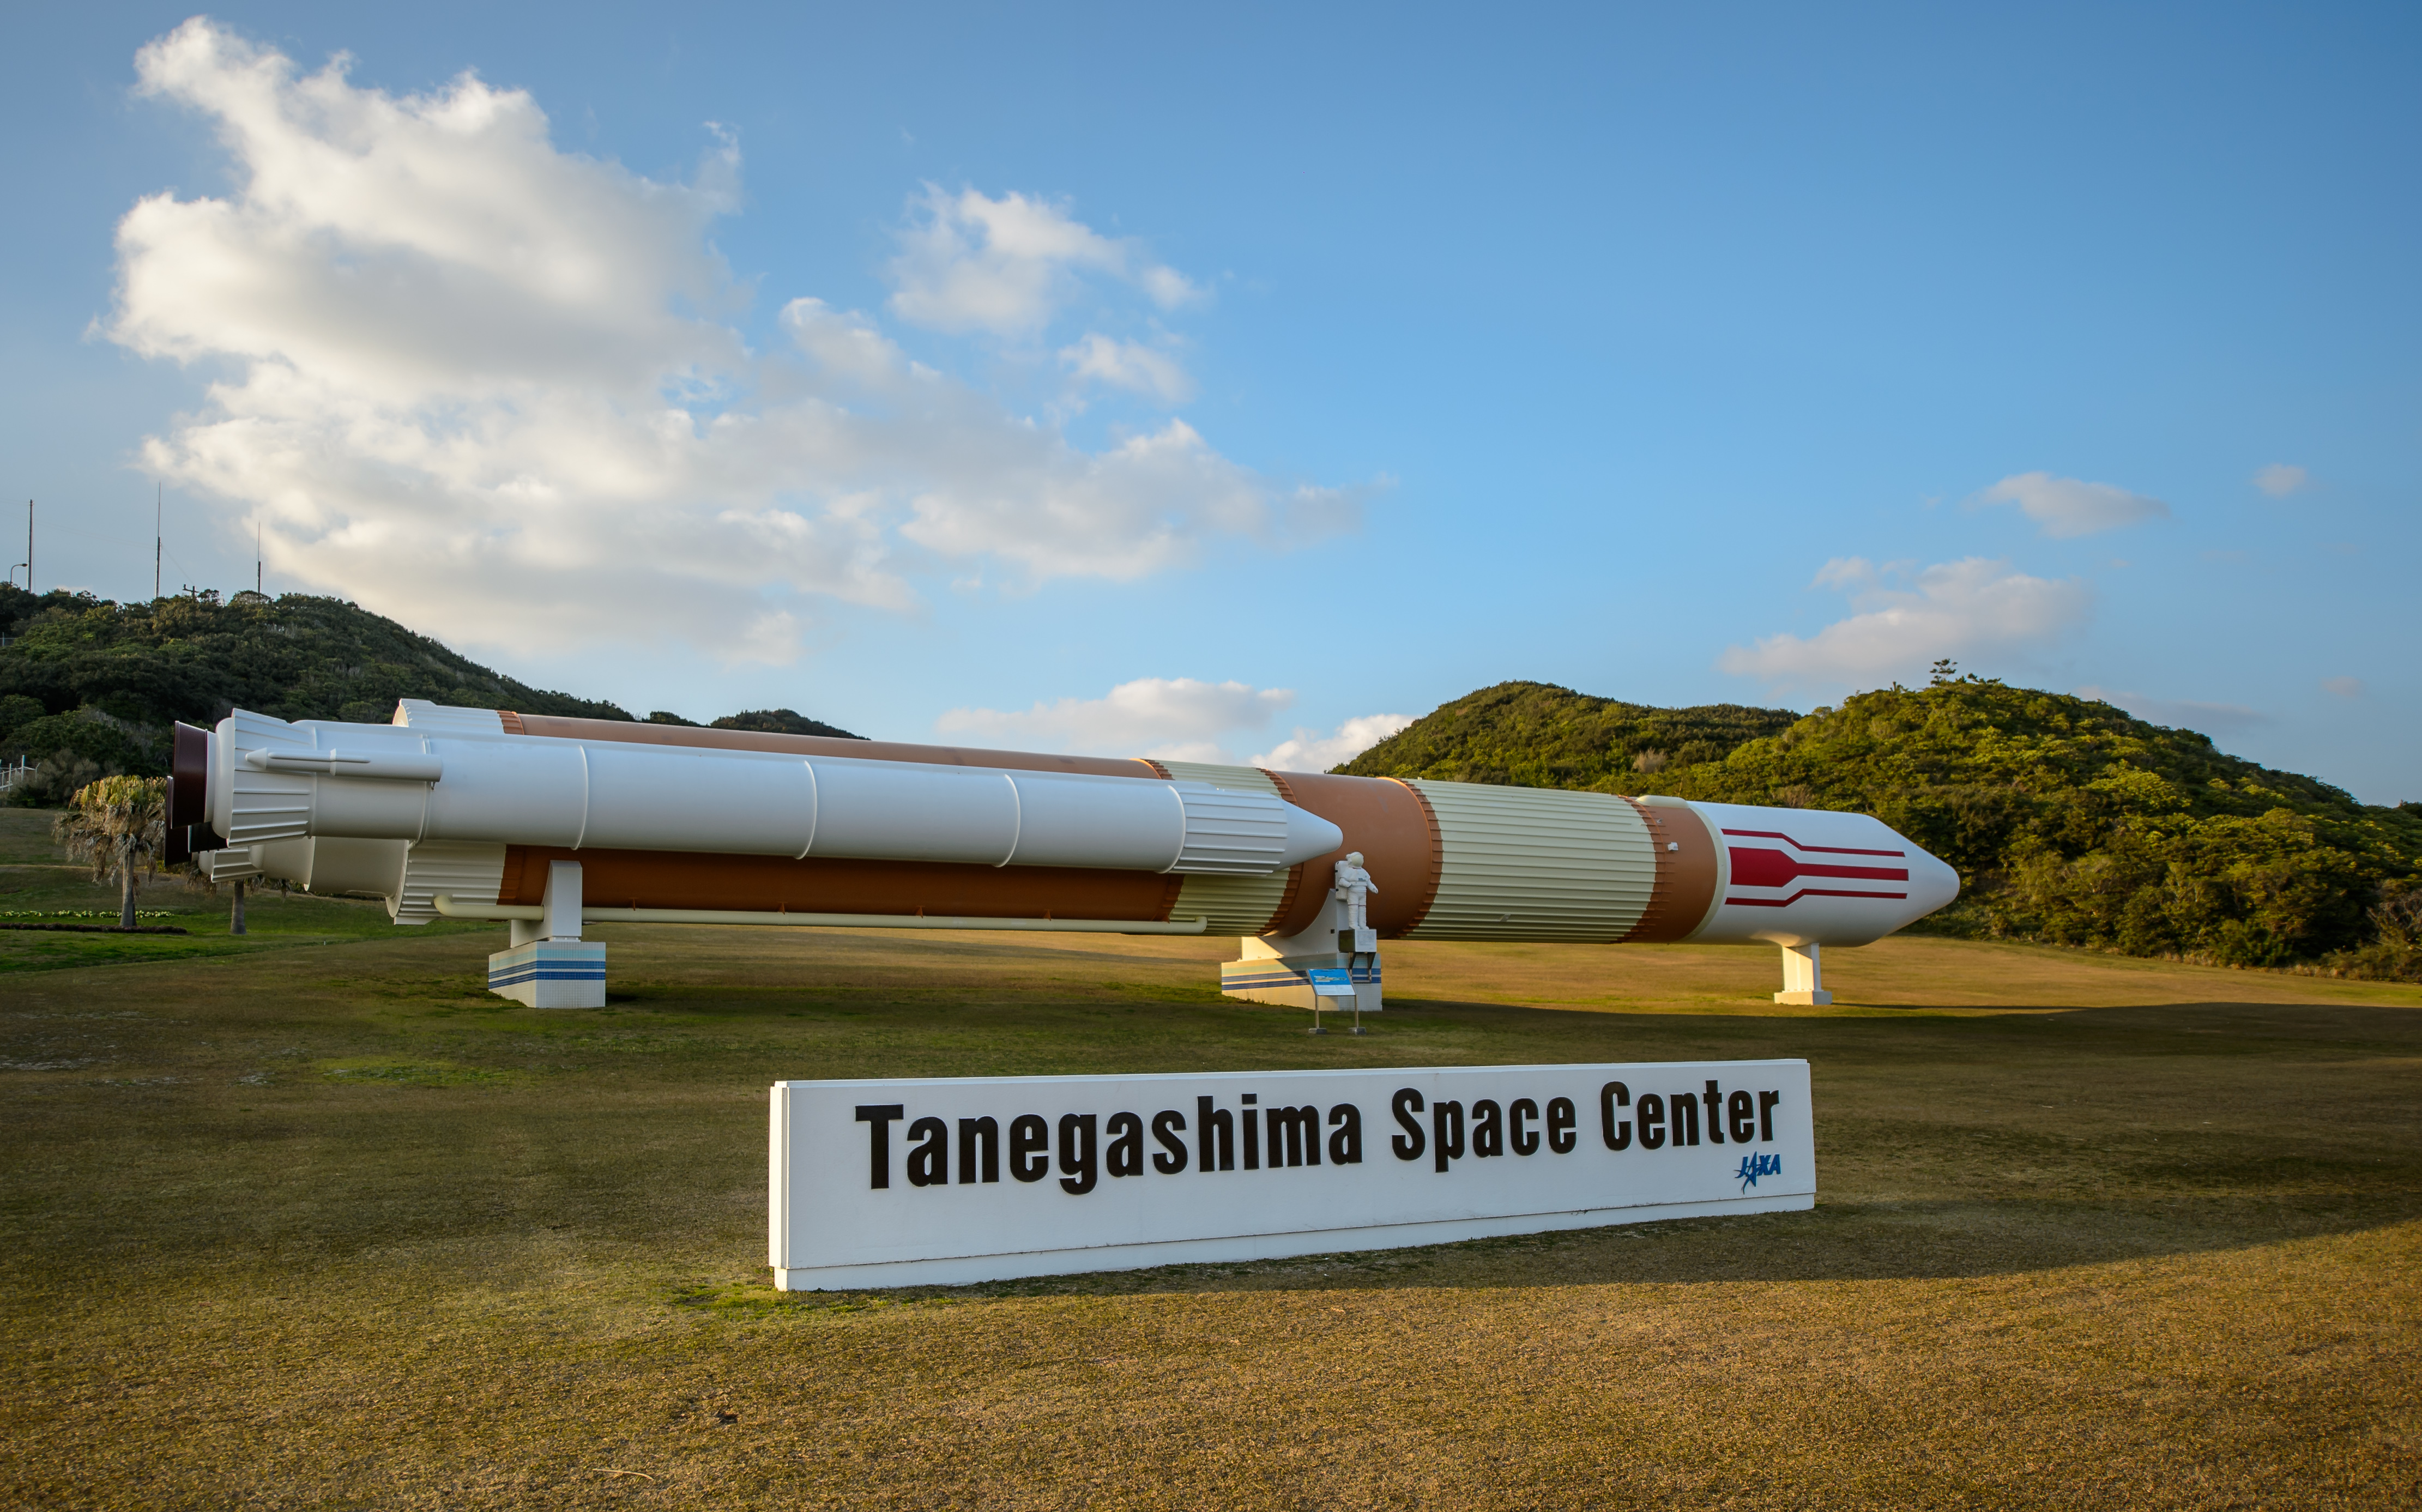 H-II Rocket Model on Display at Tanegashima Space Center